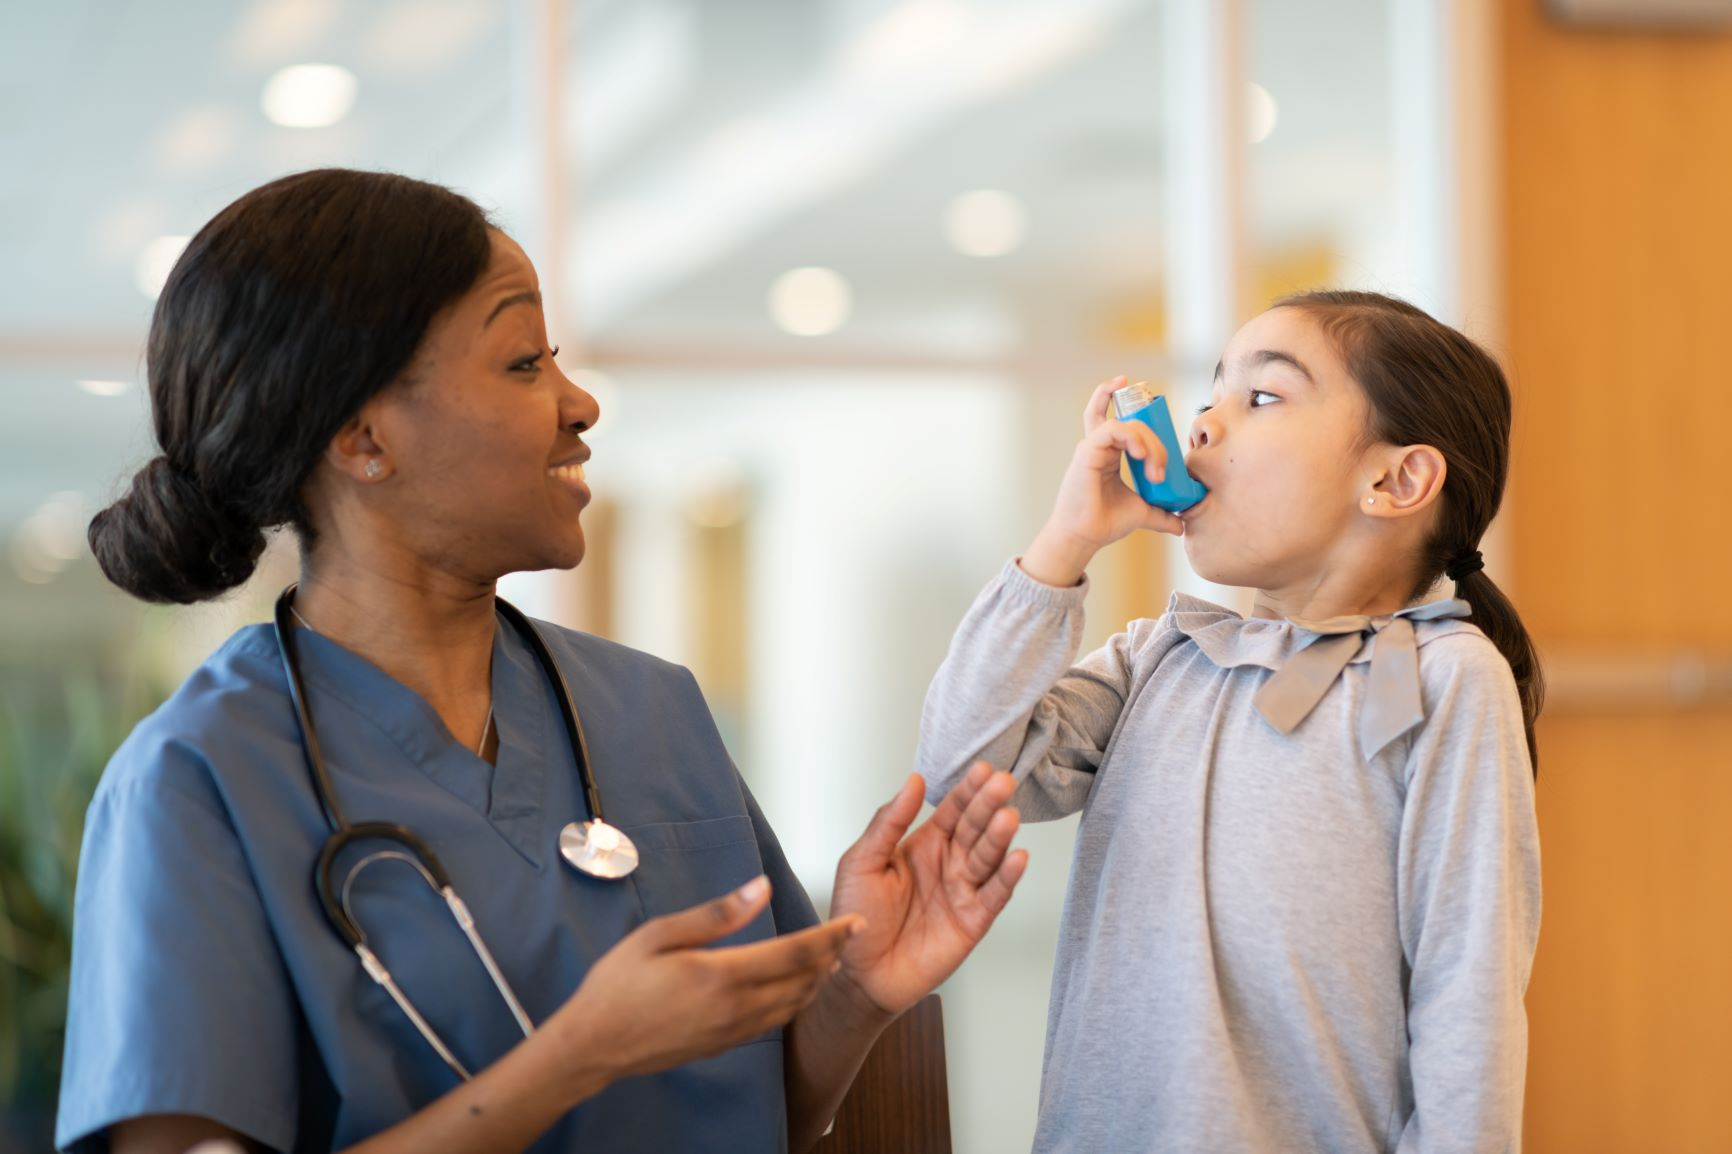 Smiling nurse cheering on little girl using an inhaler